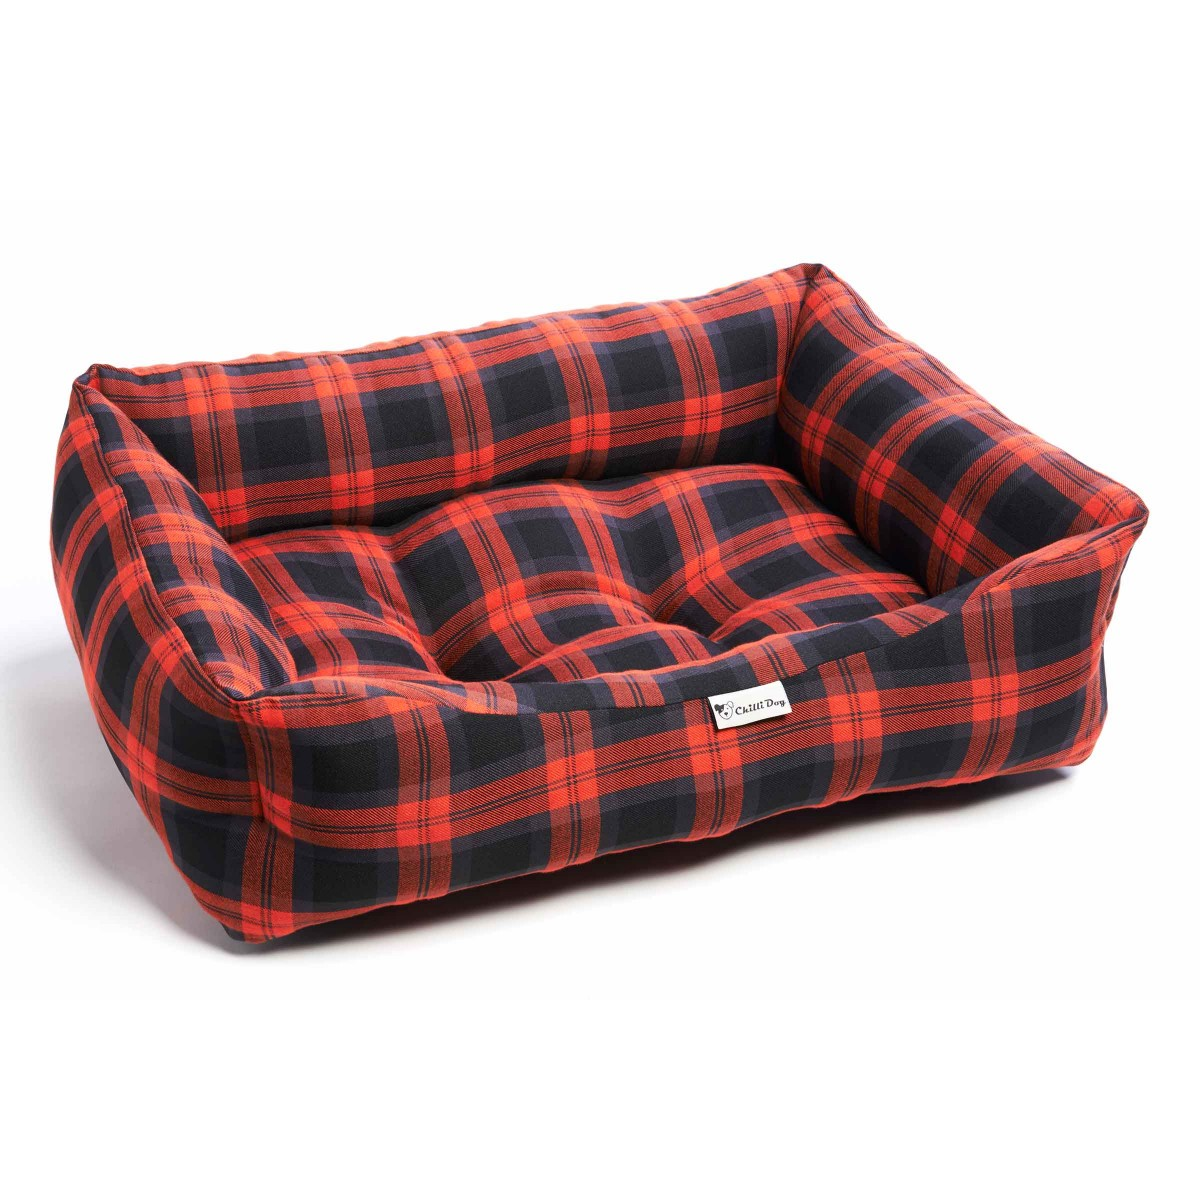 Chilli dog red grey tartan sofa dog bed Red and grey sofa